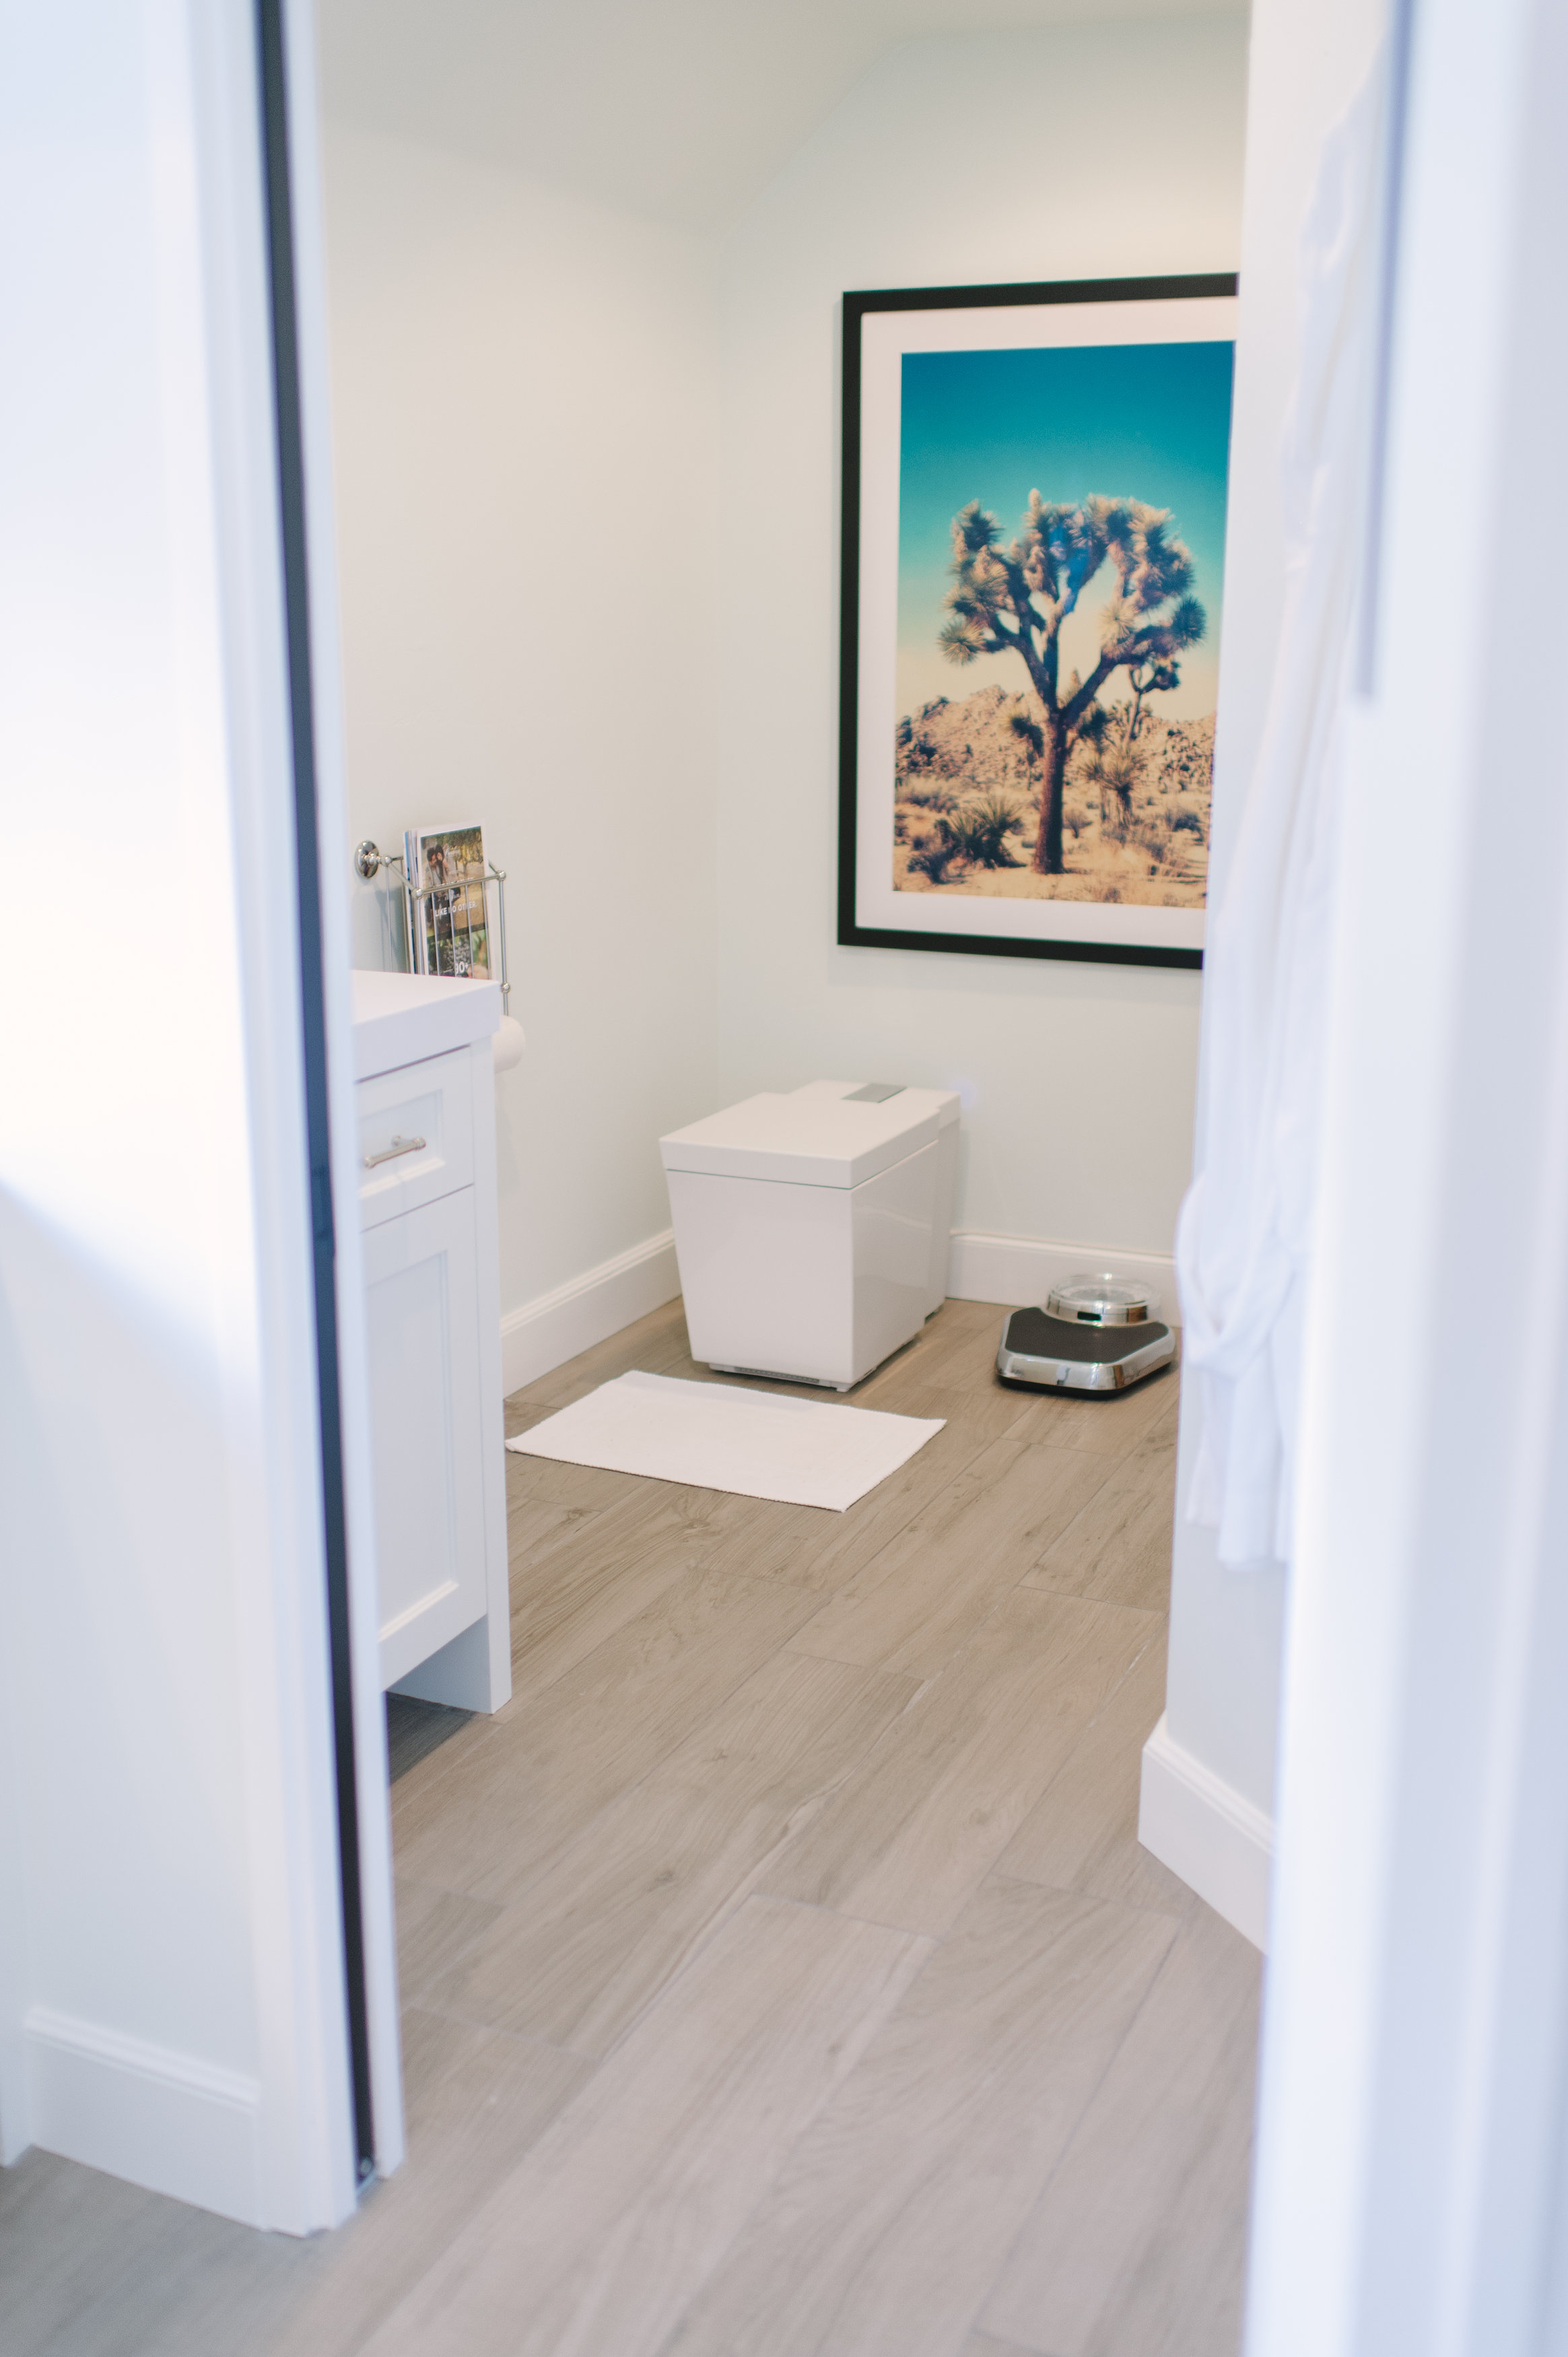 Numi toilet   The luxurious toilet shares its sequestered space with desert-inspired art.